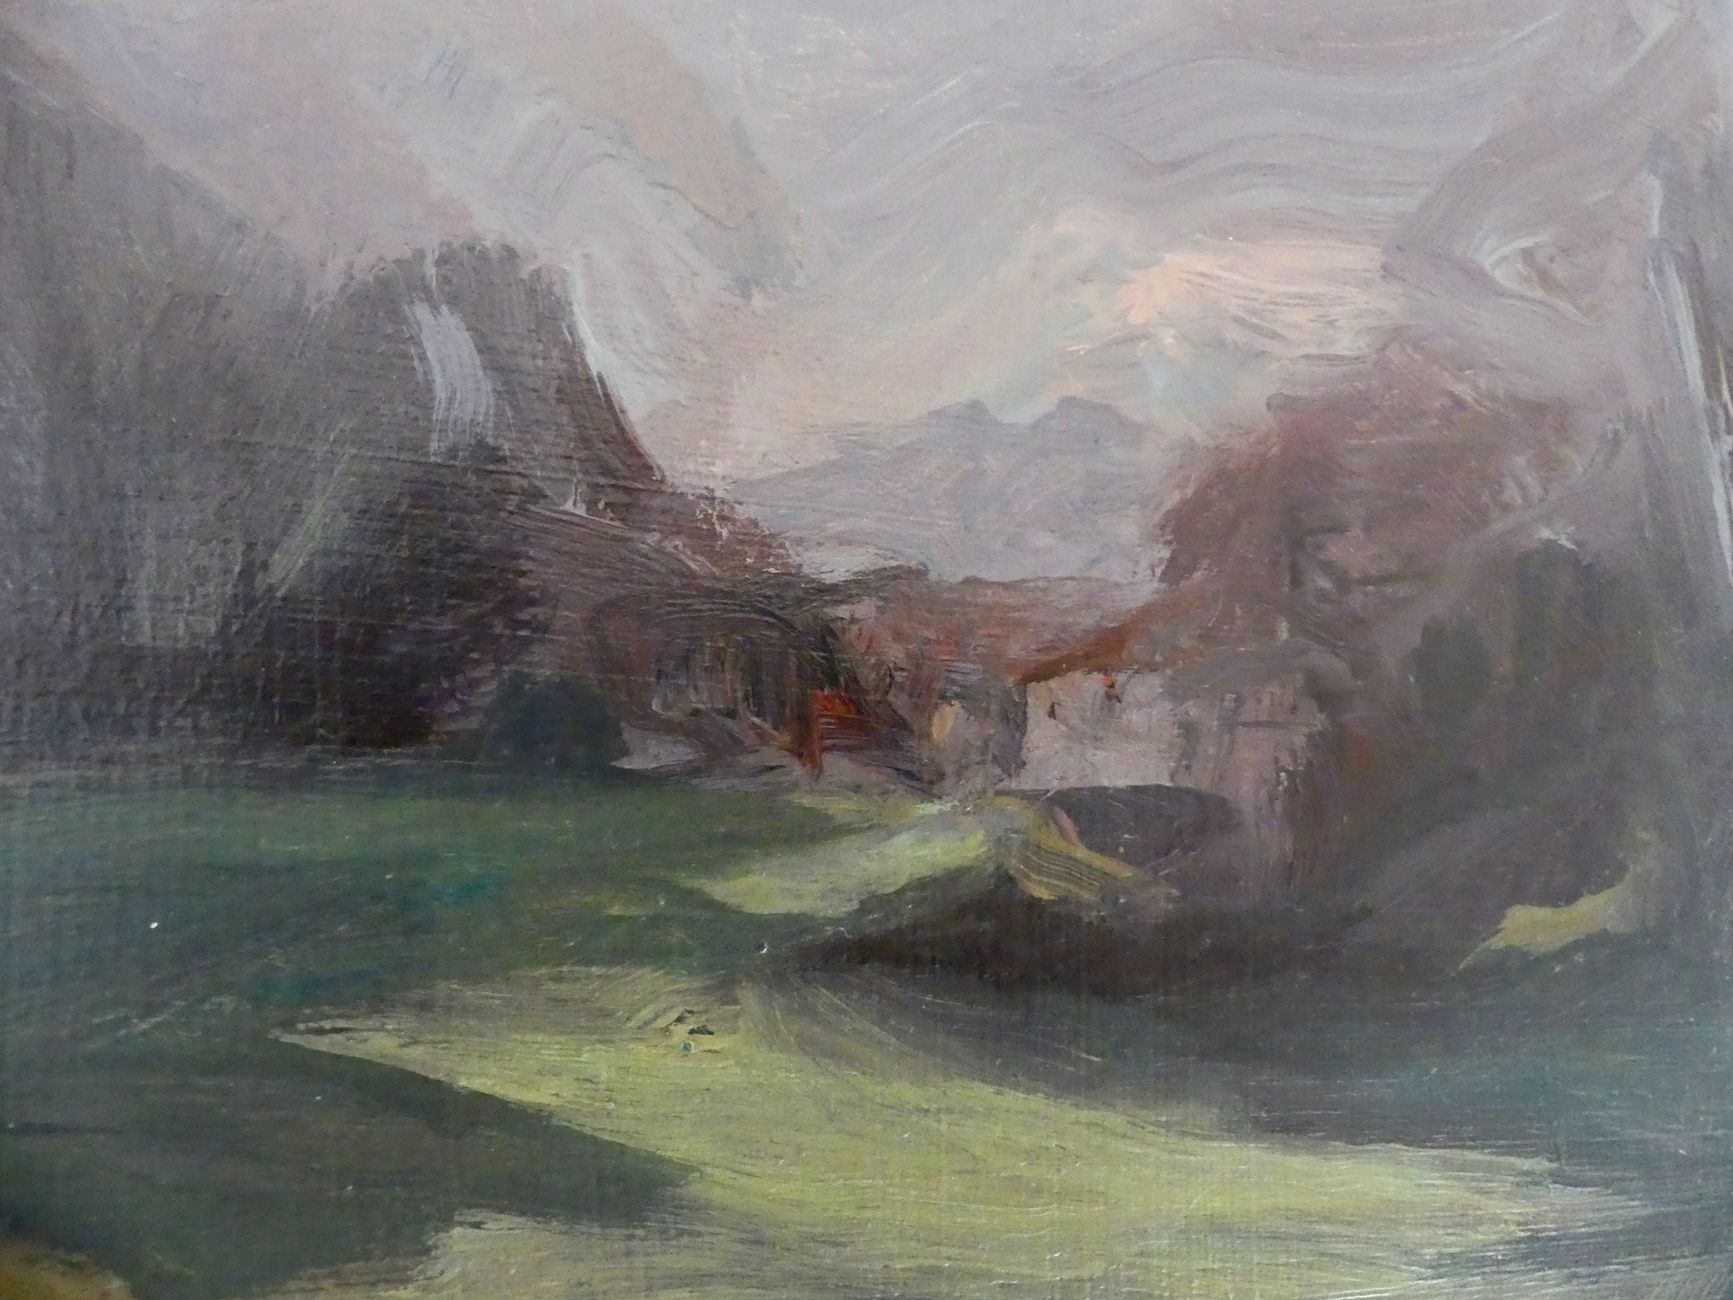 Into the woods,Valérie de Sarrieu,Contemporary painting, detail 3